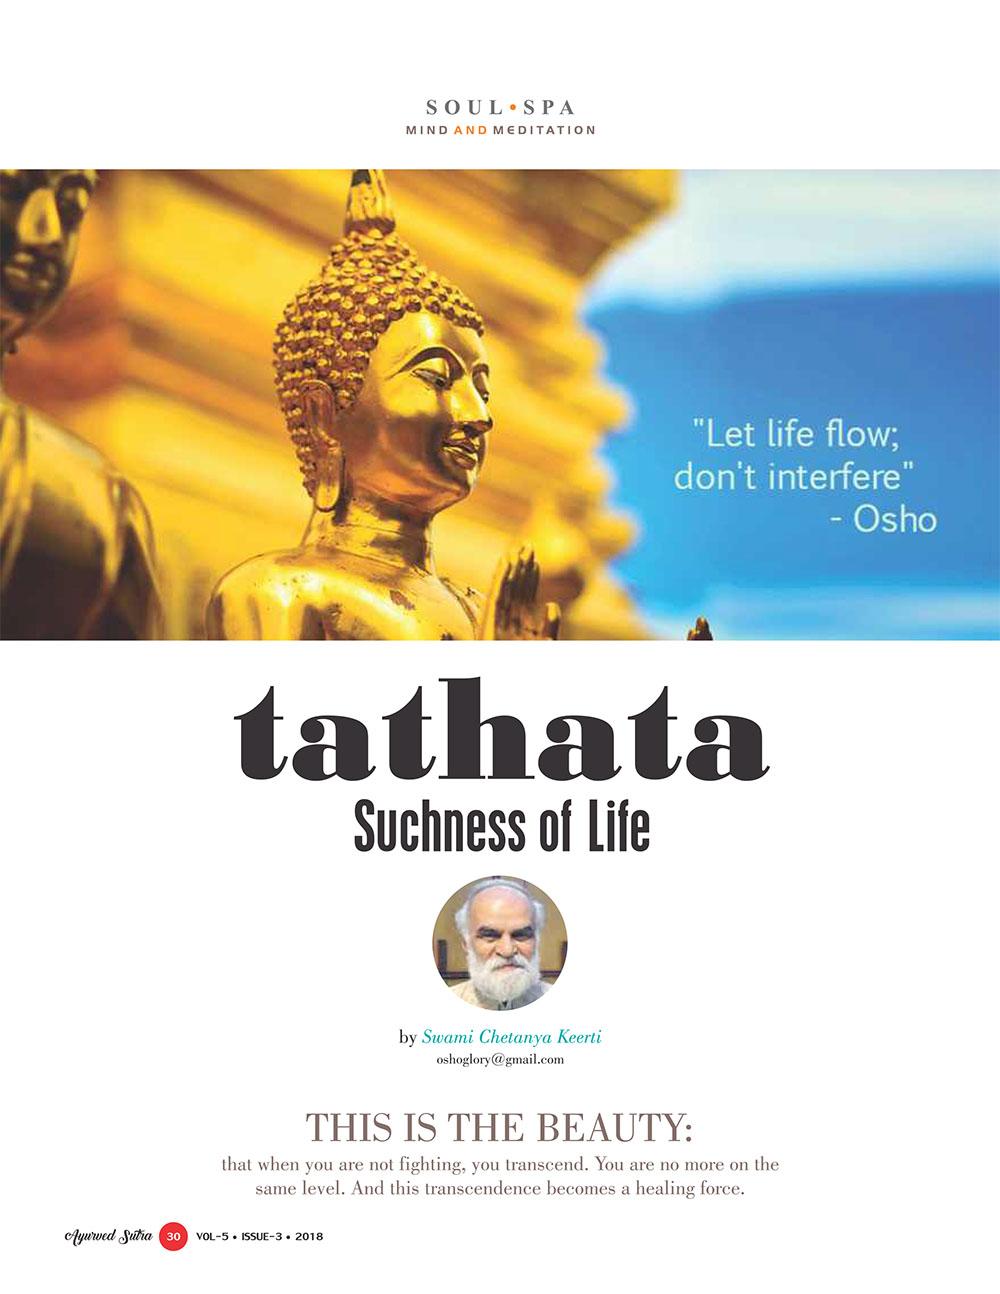 Ayurvedsutra Vol 05 issue 03 32 - Tathata: Suchness of Life